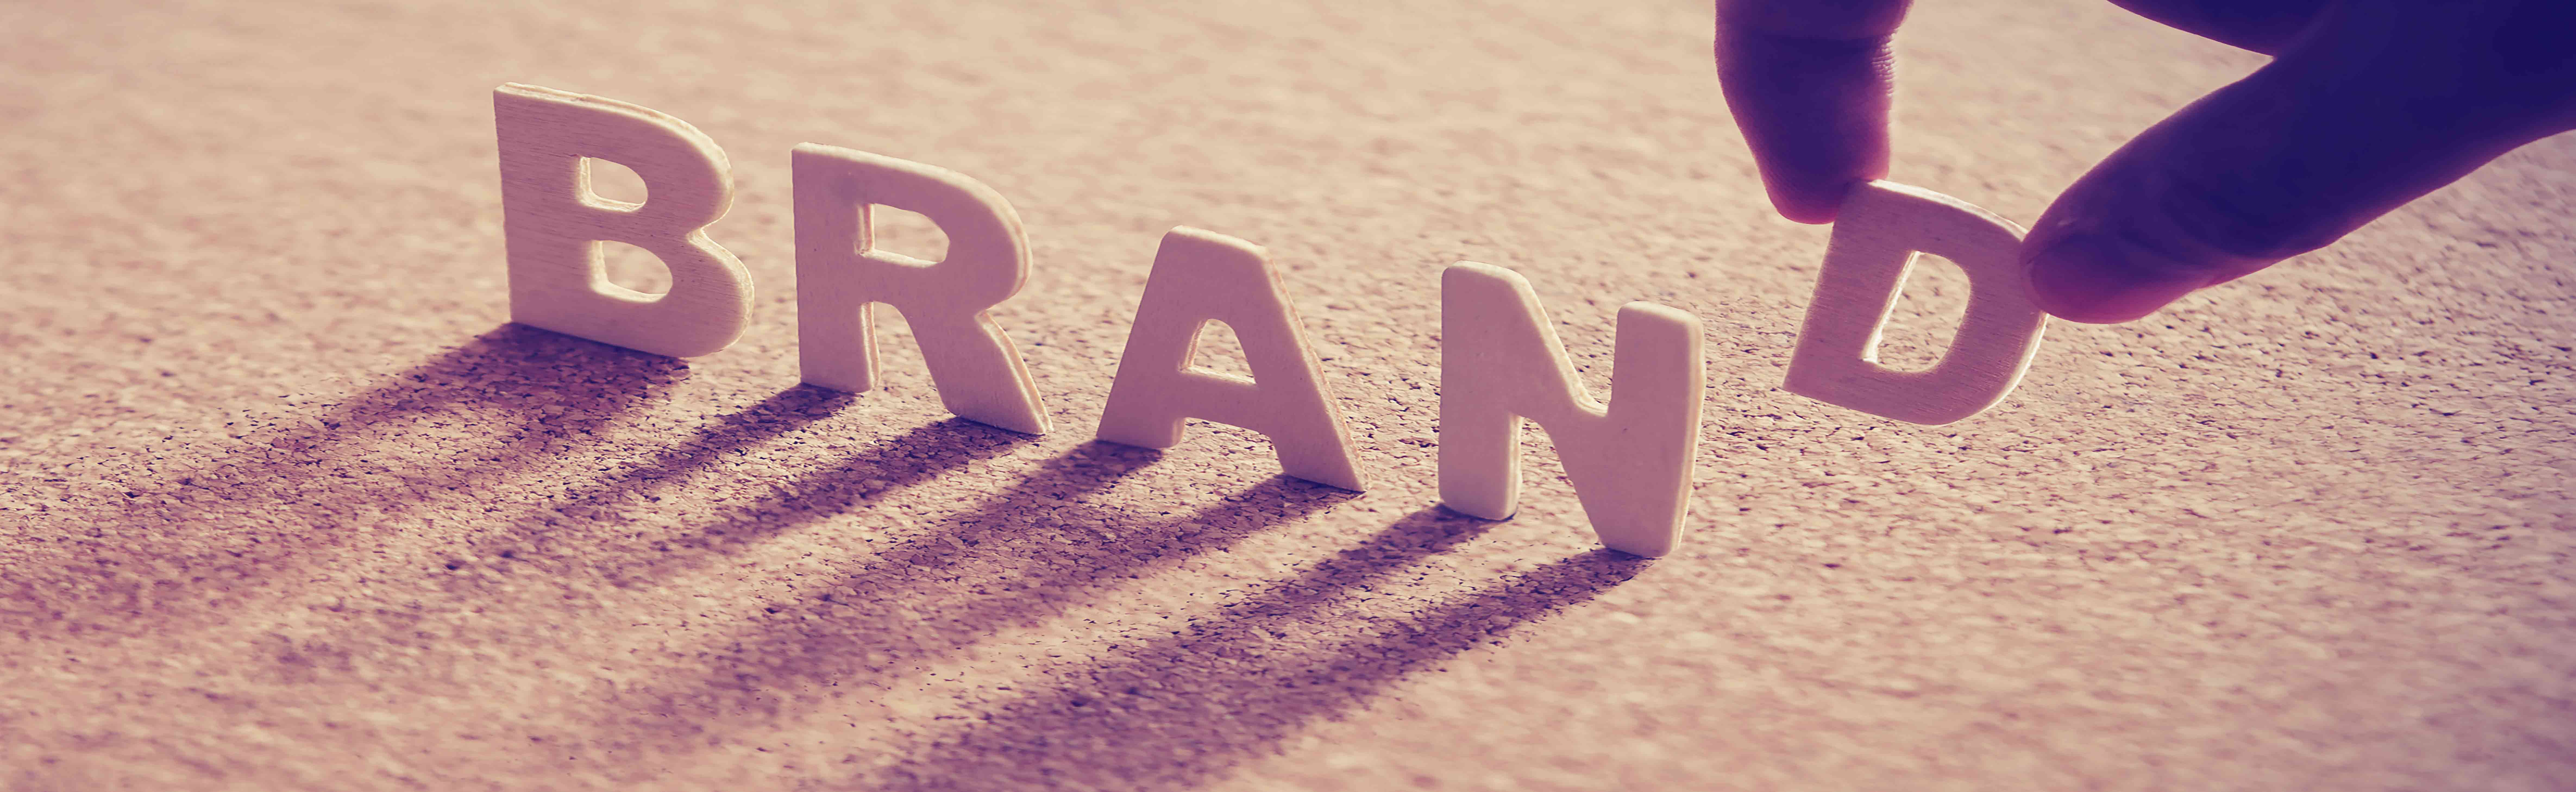 Things To Consider When Naming Your Business